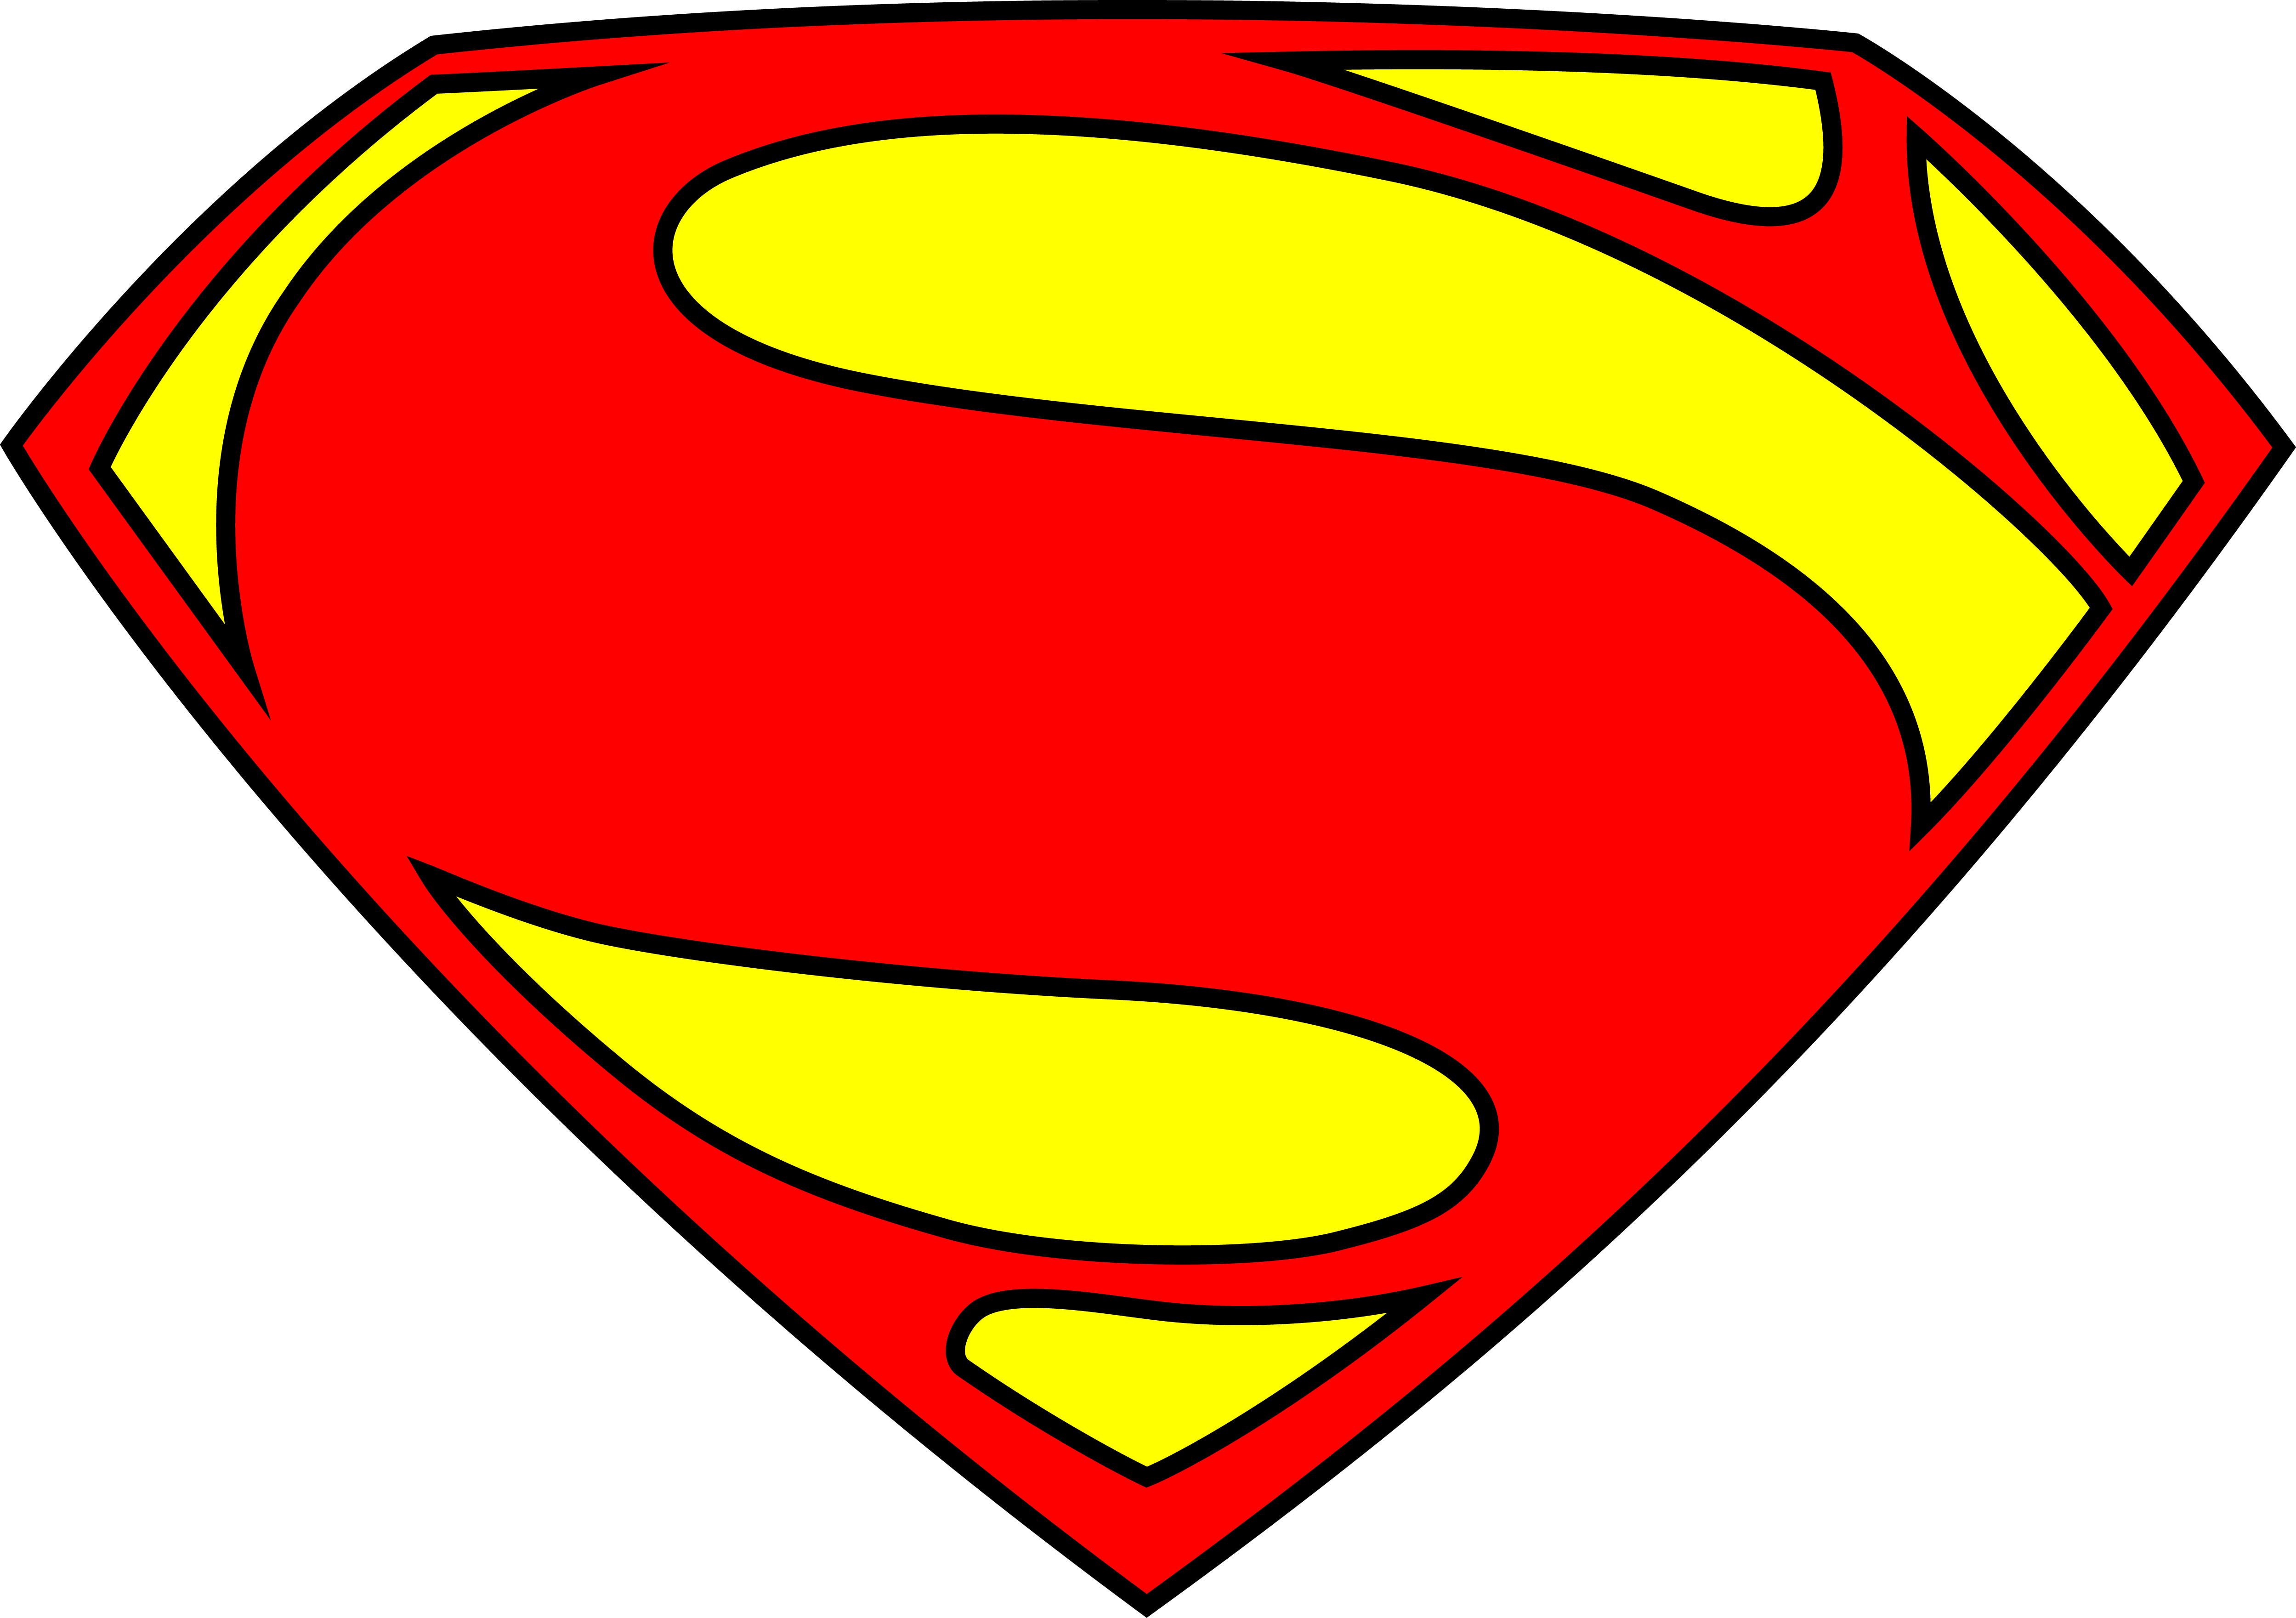 Download superman logo free photo images and clipart freeimg